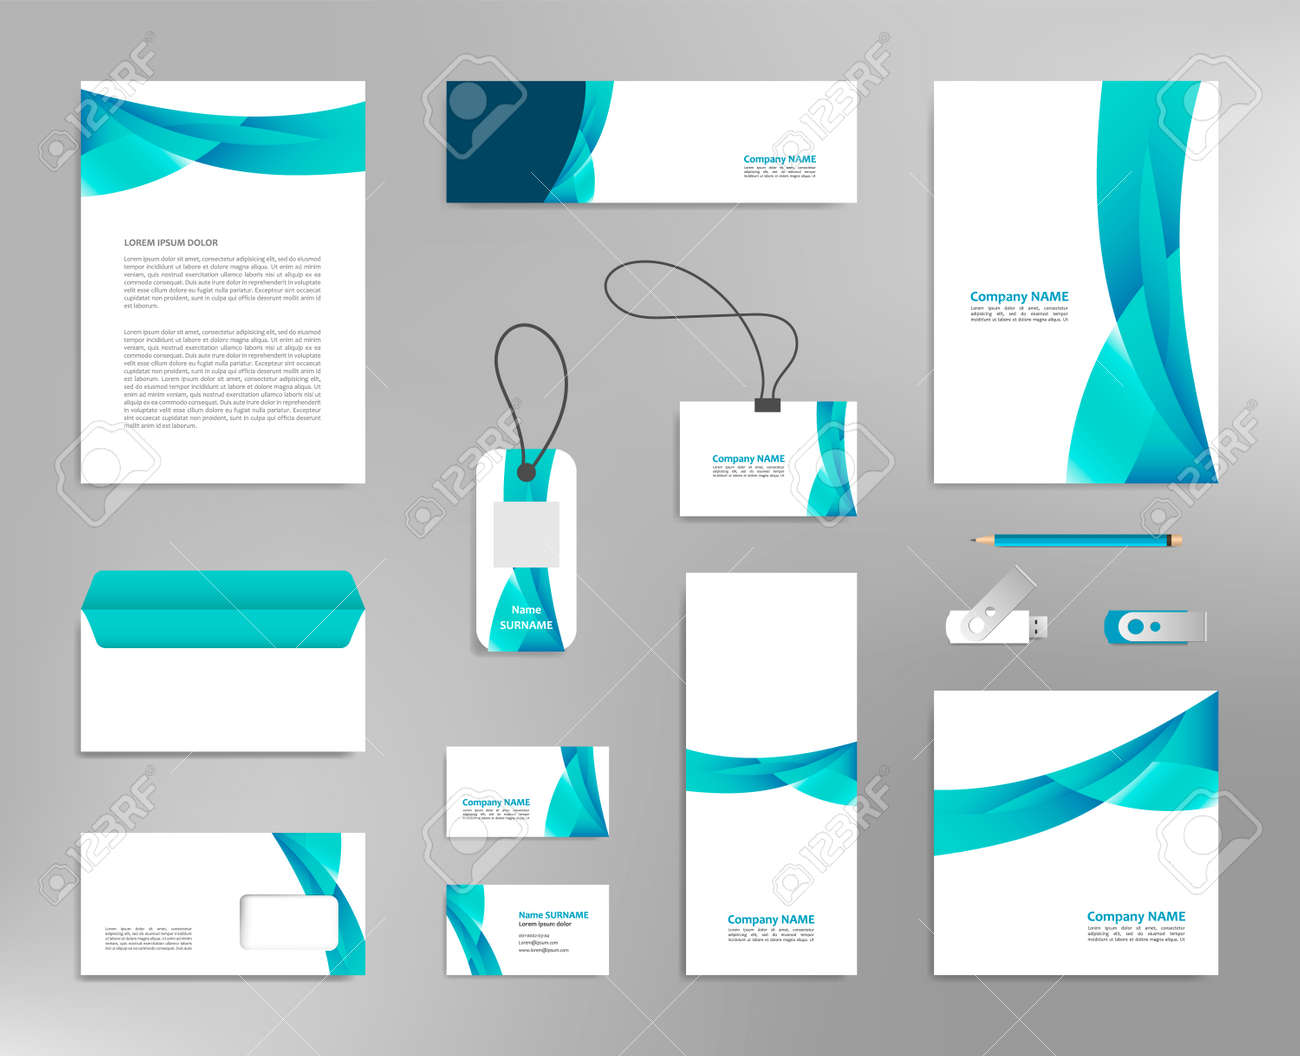 Corporate identity design template, business stationery mockup for company branding - 151290886